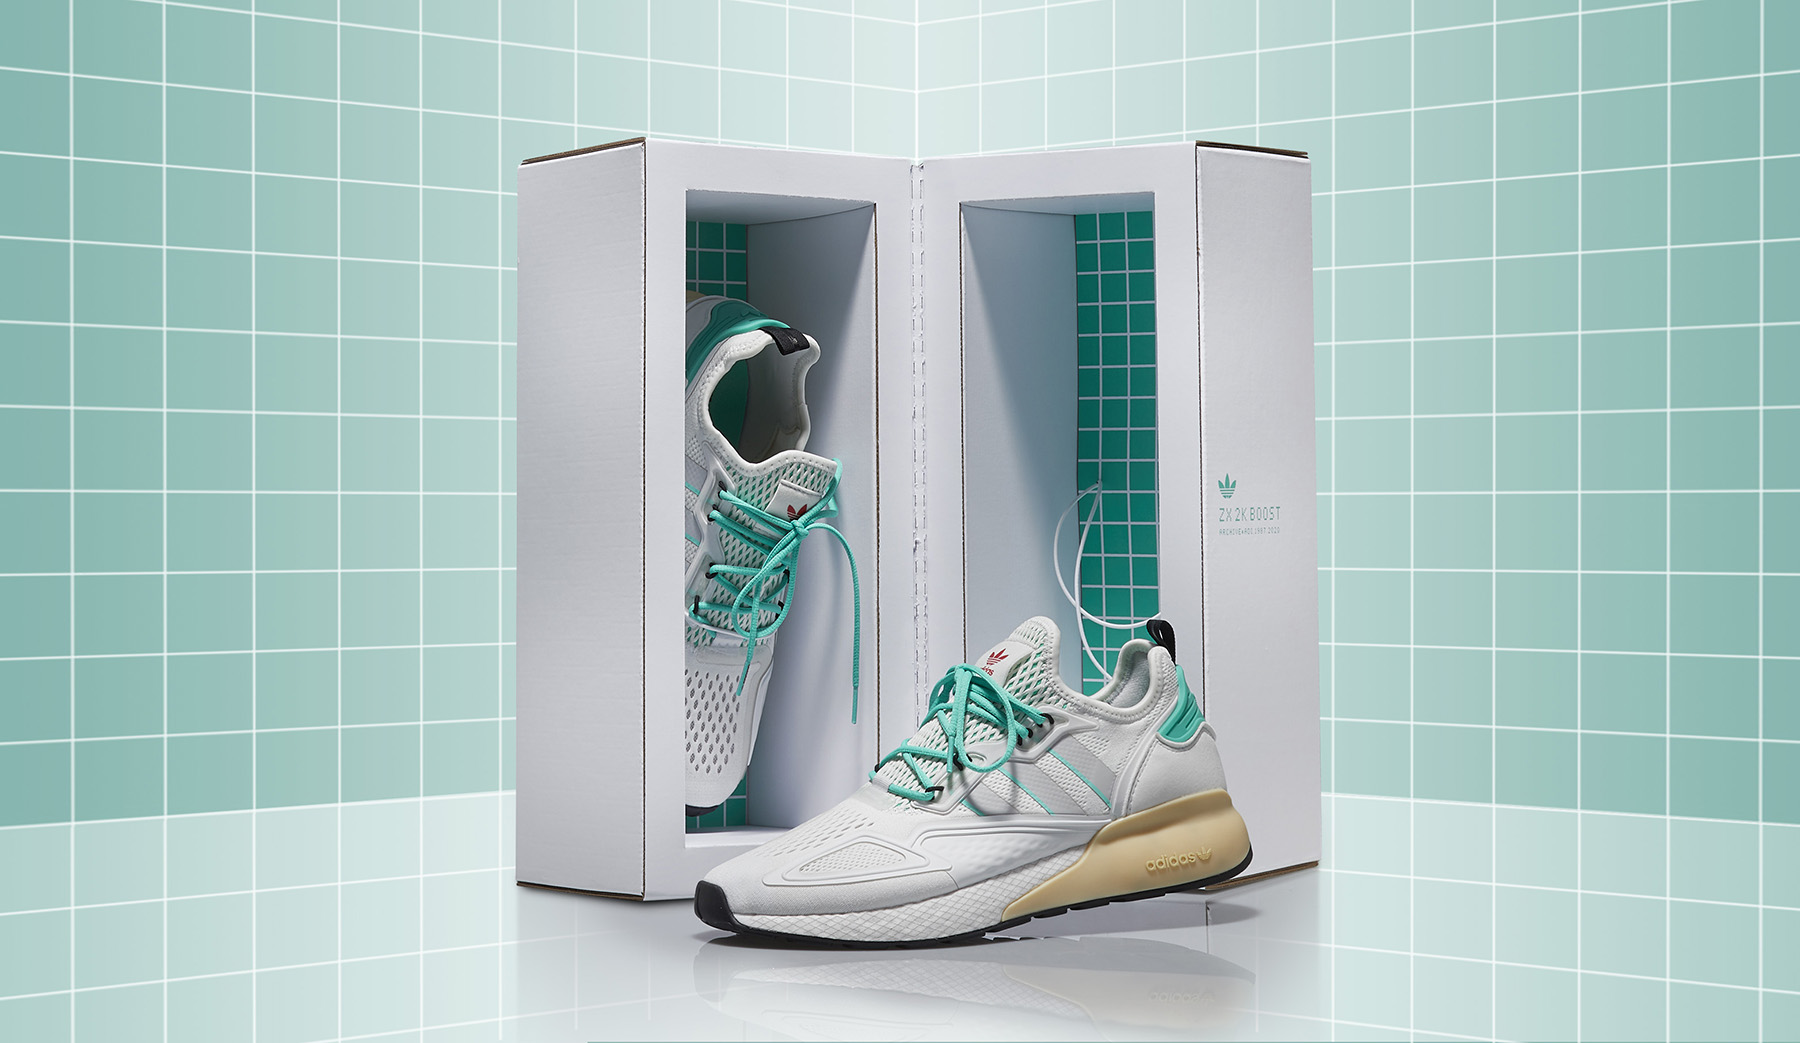 Adidas Originals ZX 2K BOOST Packaging Design by Hovers Over Water